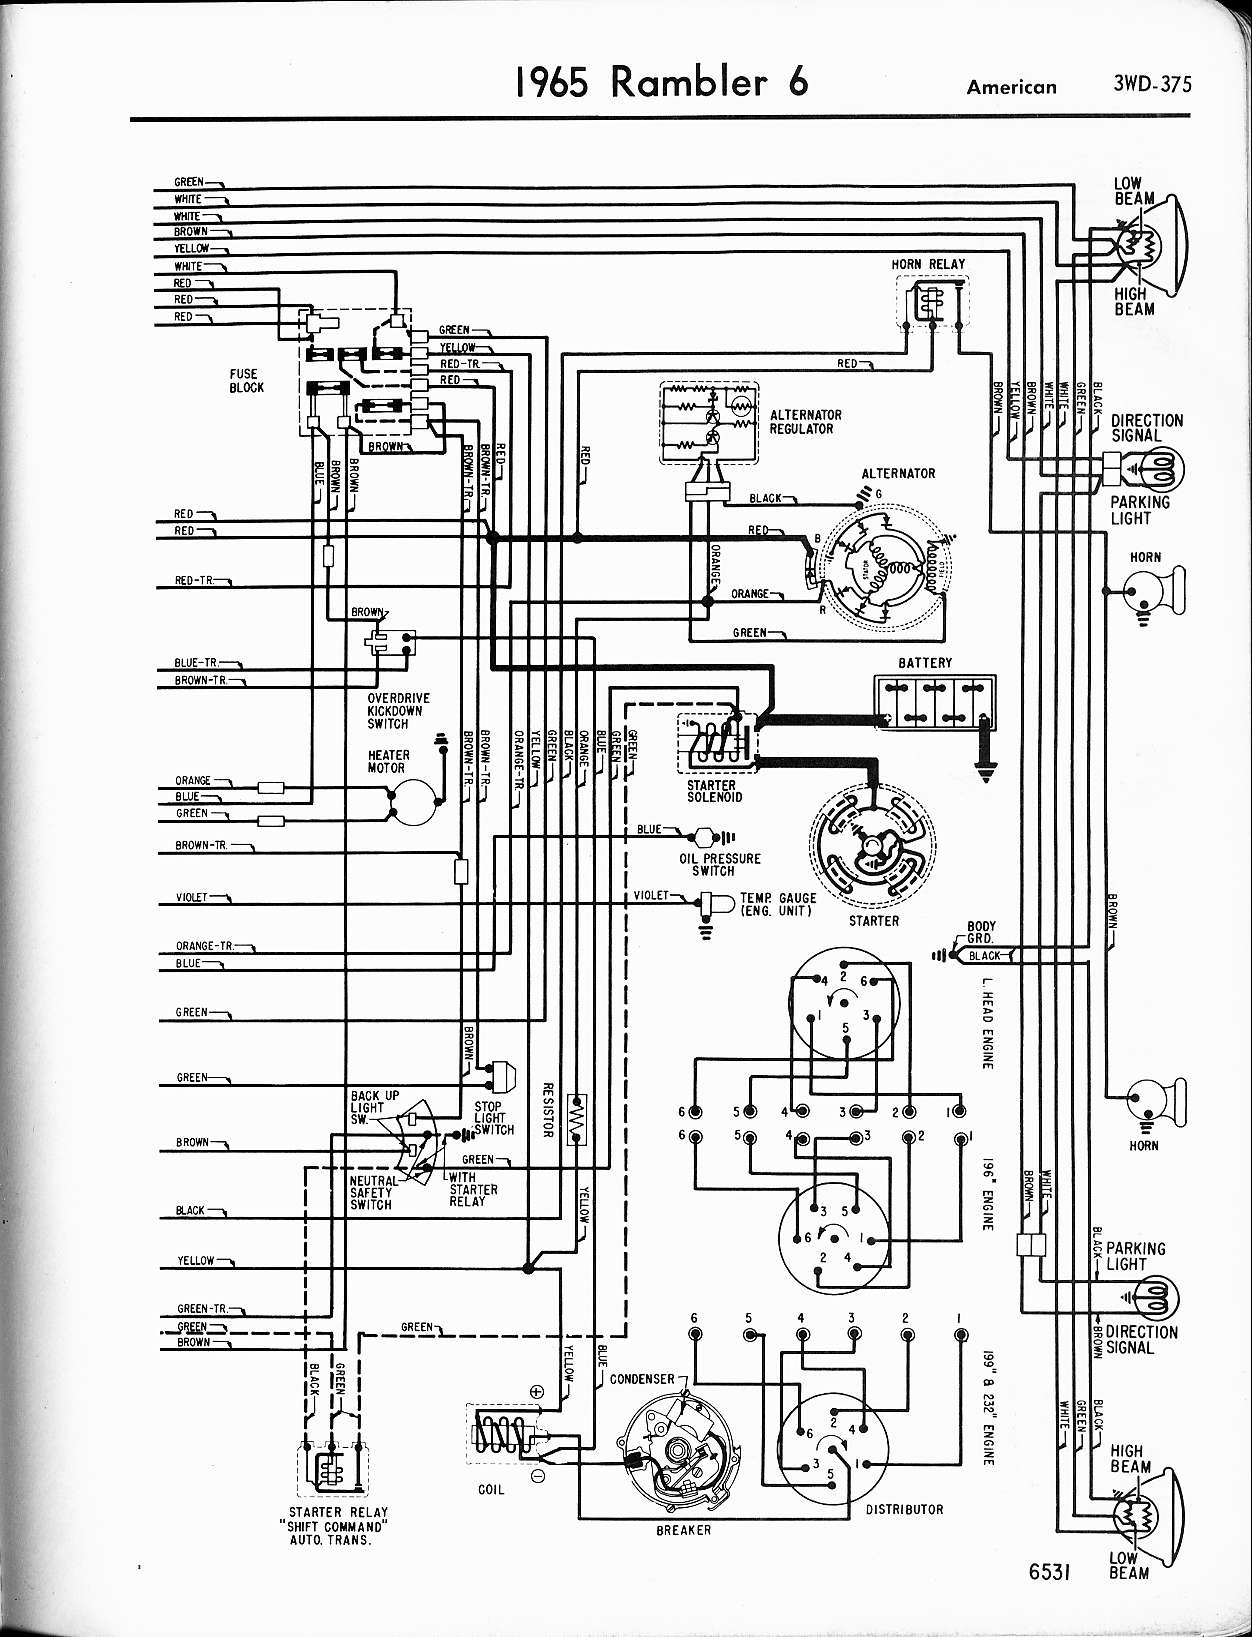 Dodge Dart Wiring Diagram Tractor Repair With Wiring Diagram - 1964 chrysler newport wiring diagram